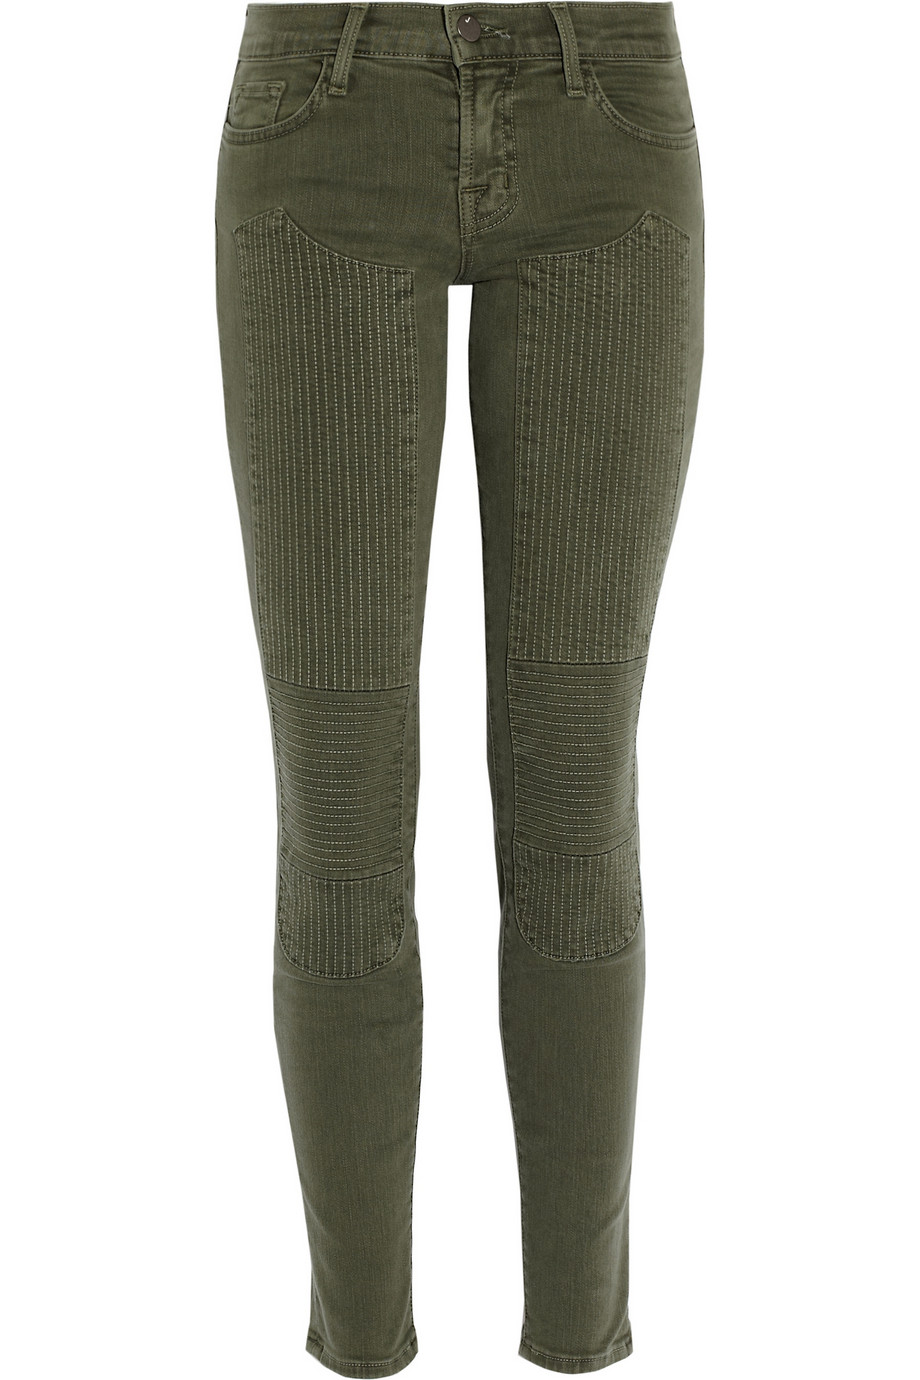 Roz moto-paneled mid-rise skinny jeans | J Brand | THE OUTNET